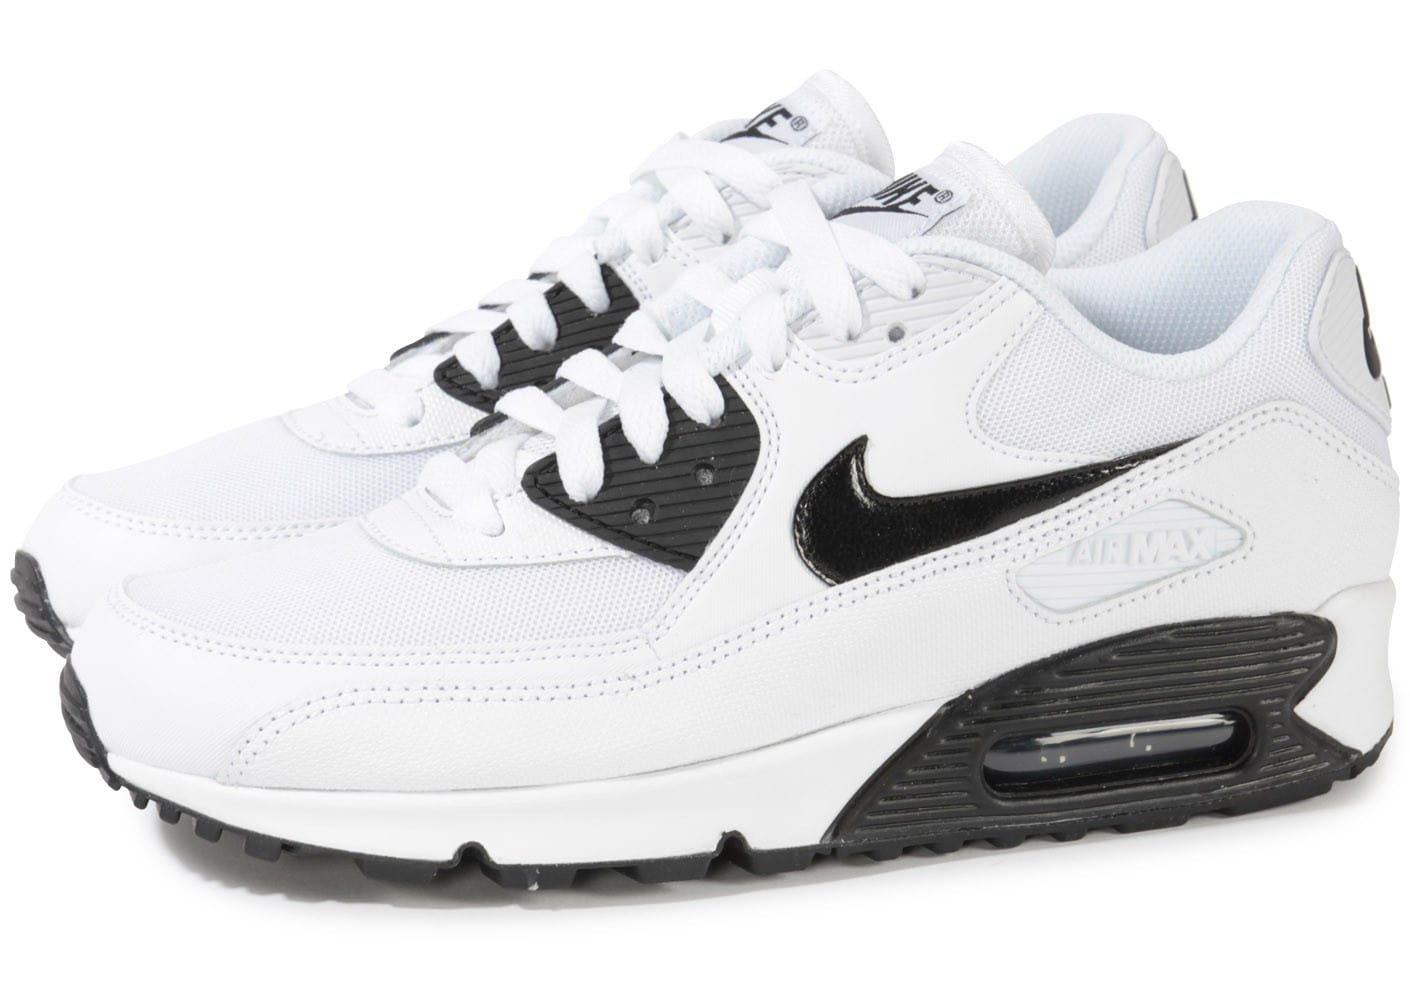 nike air max 90 blanche et noire chaussures chaussures chausport. Black Bedroom Furniture Sets. Home Design Ideas